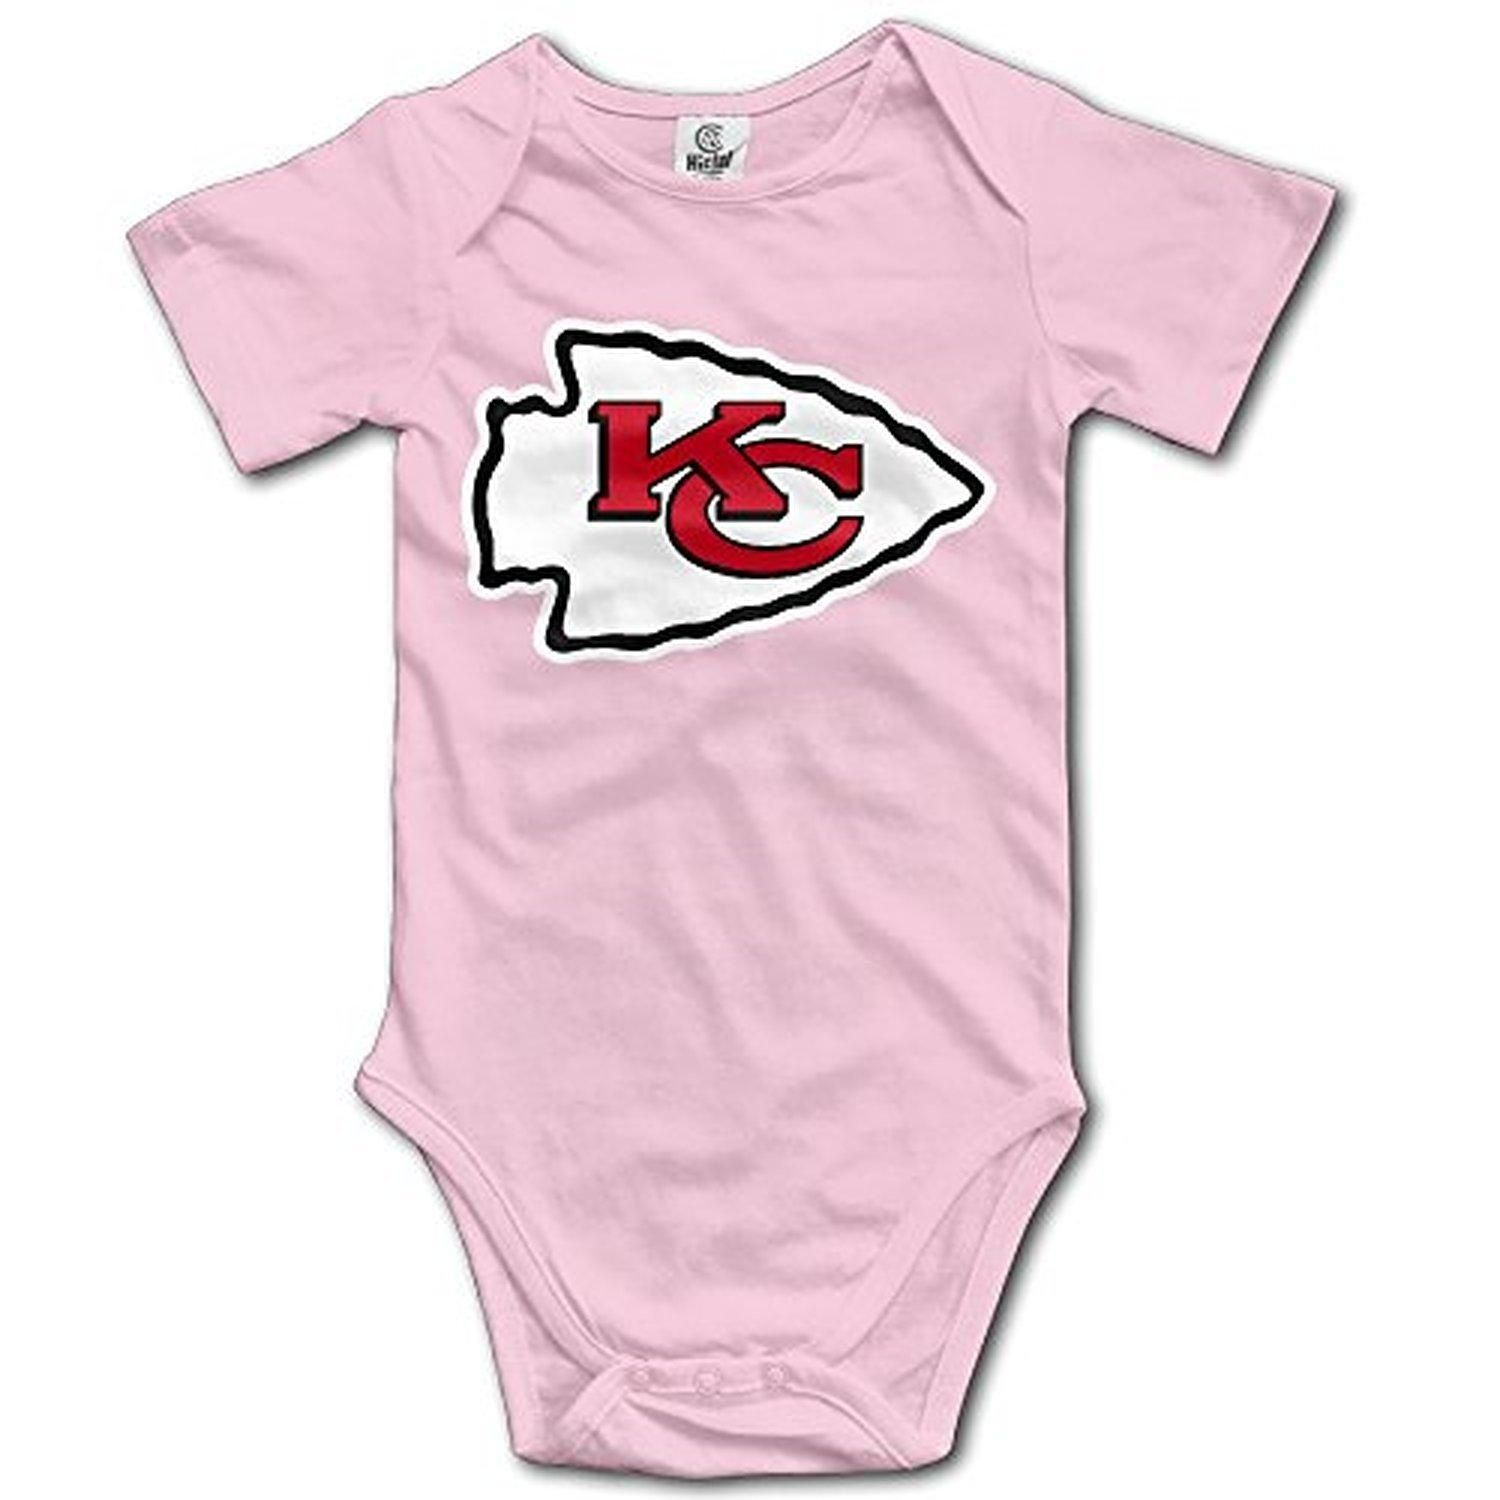 Kansas City Chiefs Logo Missouri Warpaint K C Baby Boy Girls esies